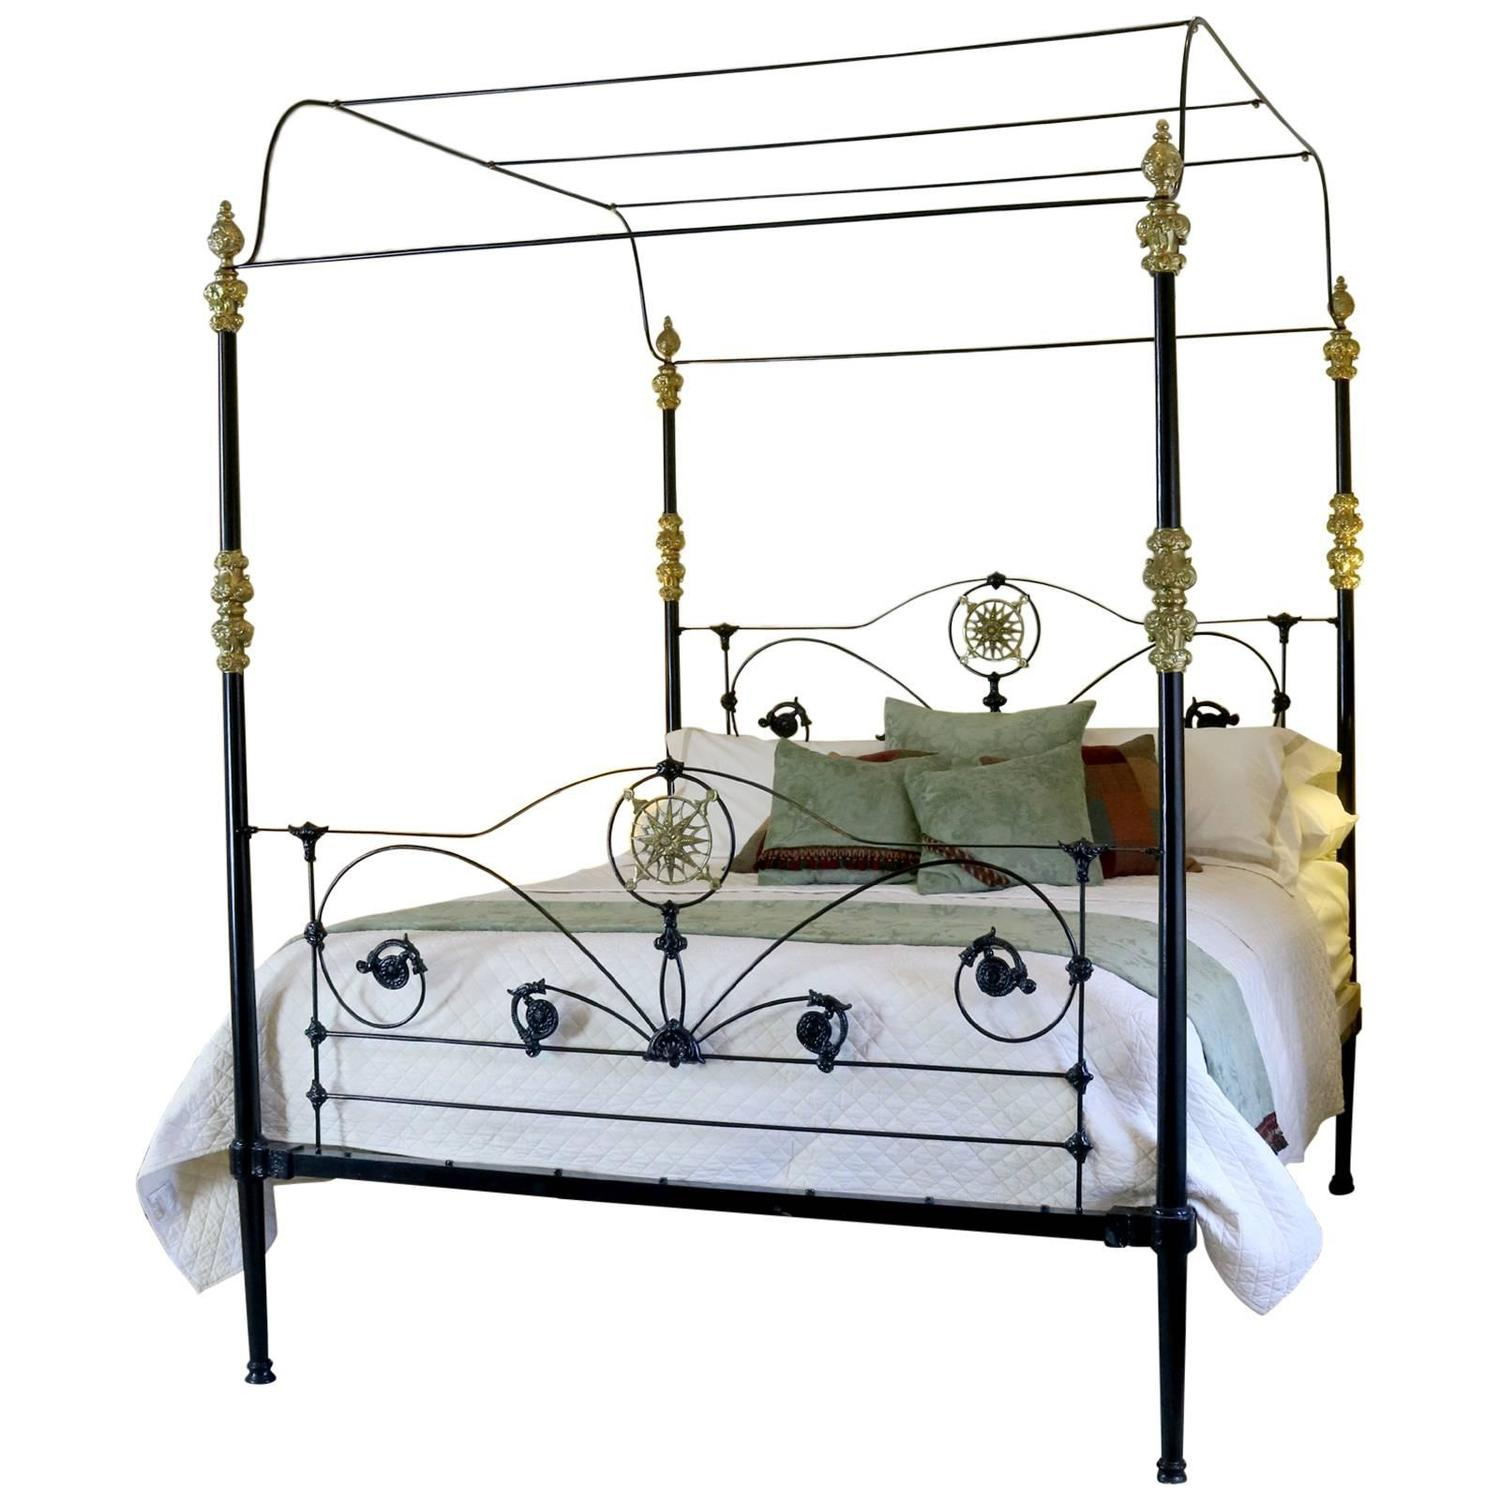 Cast Iron Four Poster Bed For Sale At 1stdibs